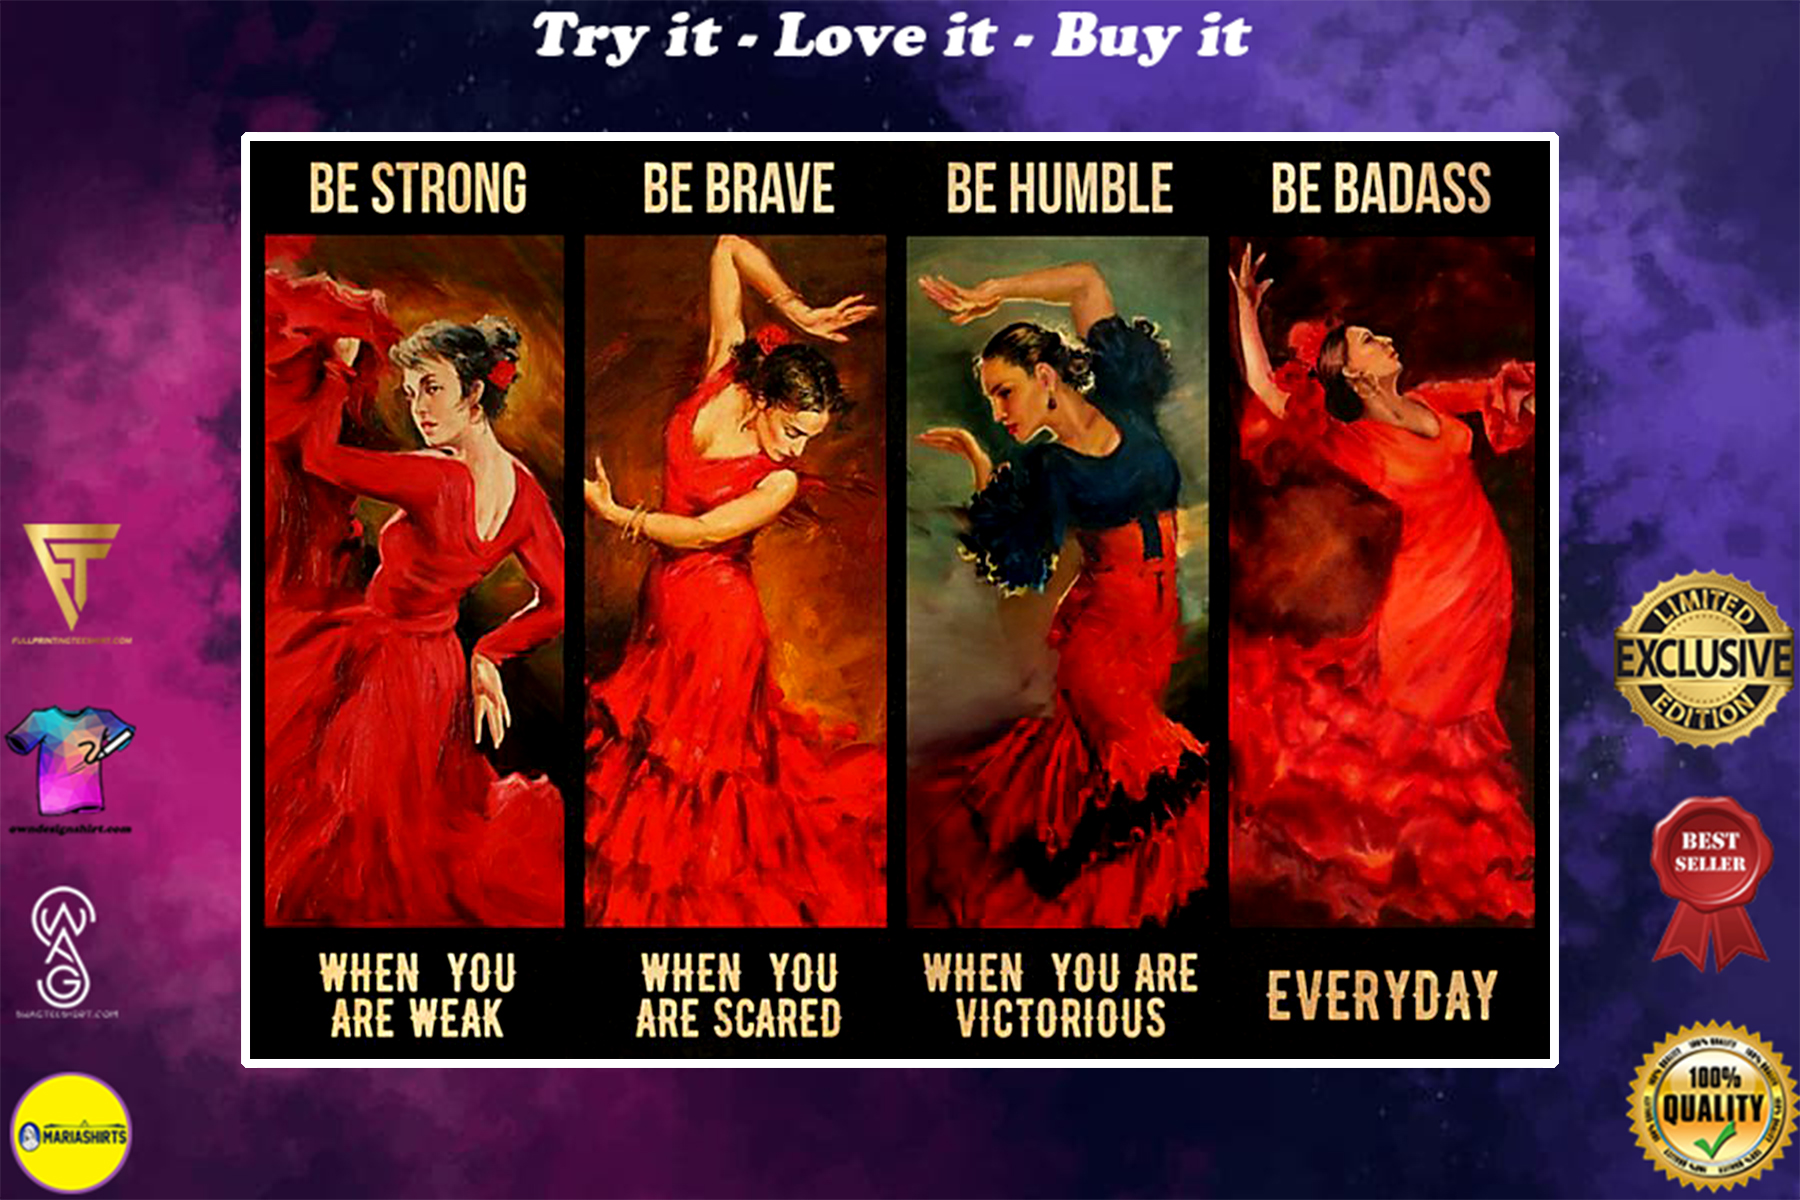 vintage girl latin dance be strong when you are weak be brave when you are scared poster